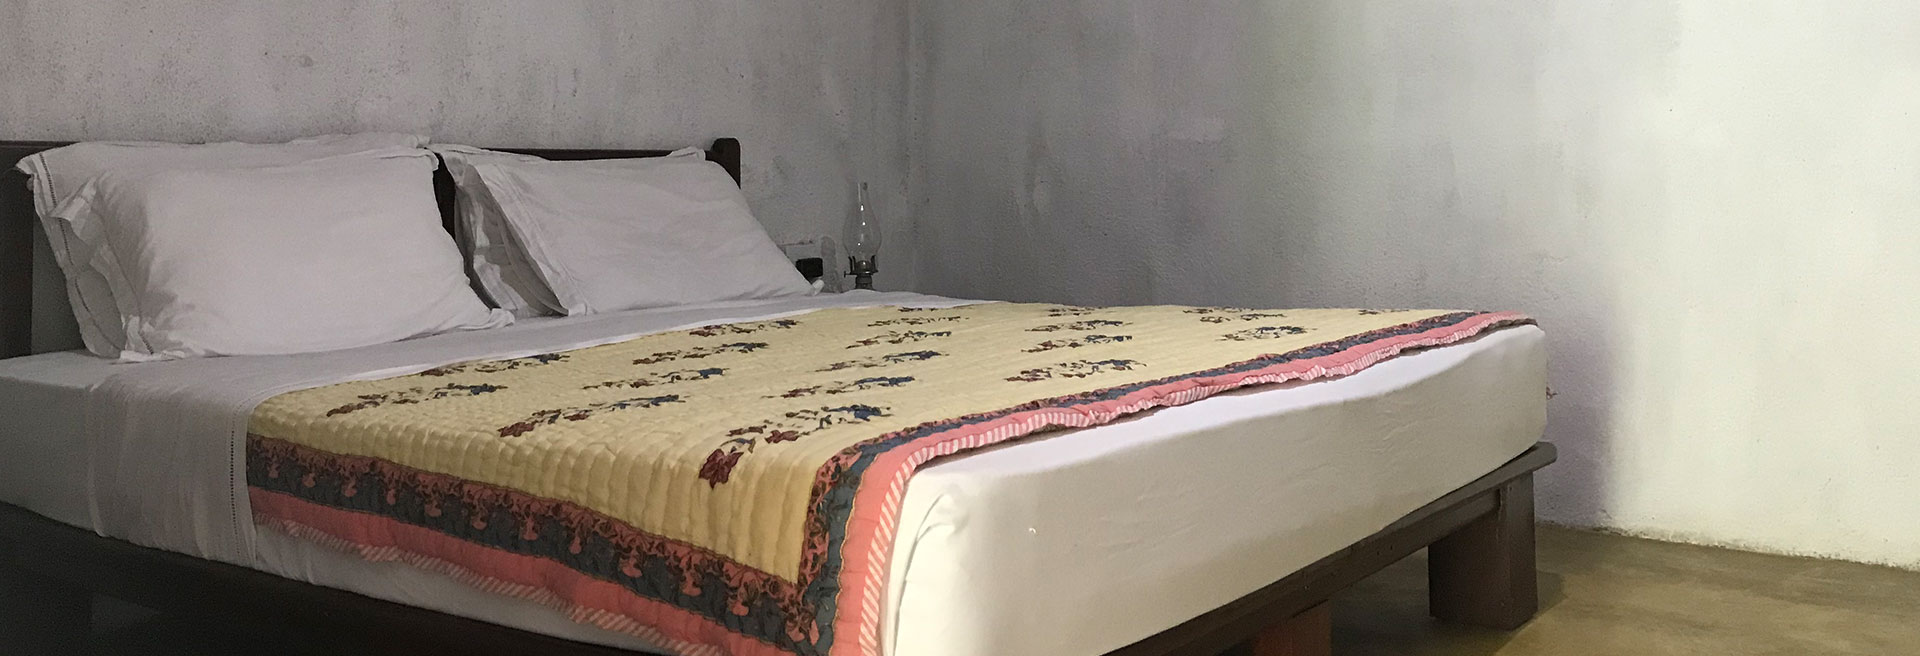 Interior view of the bedroom